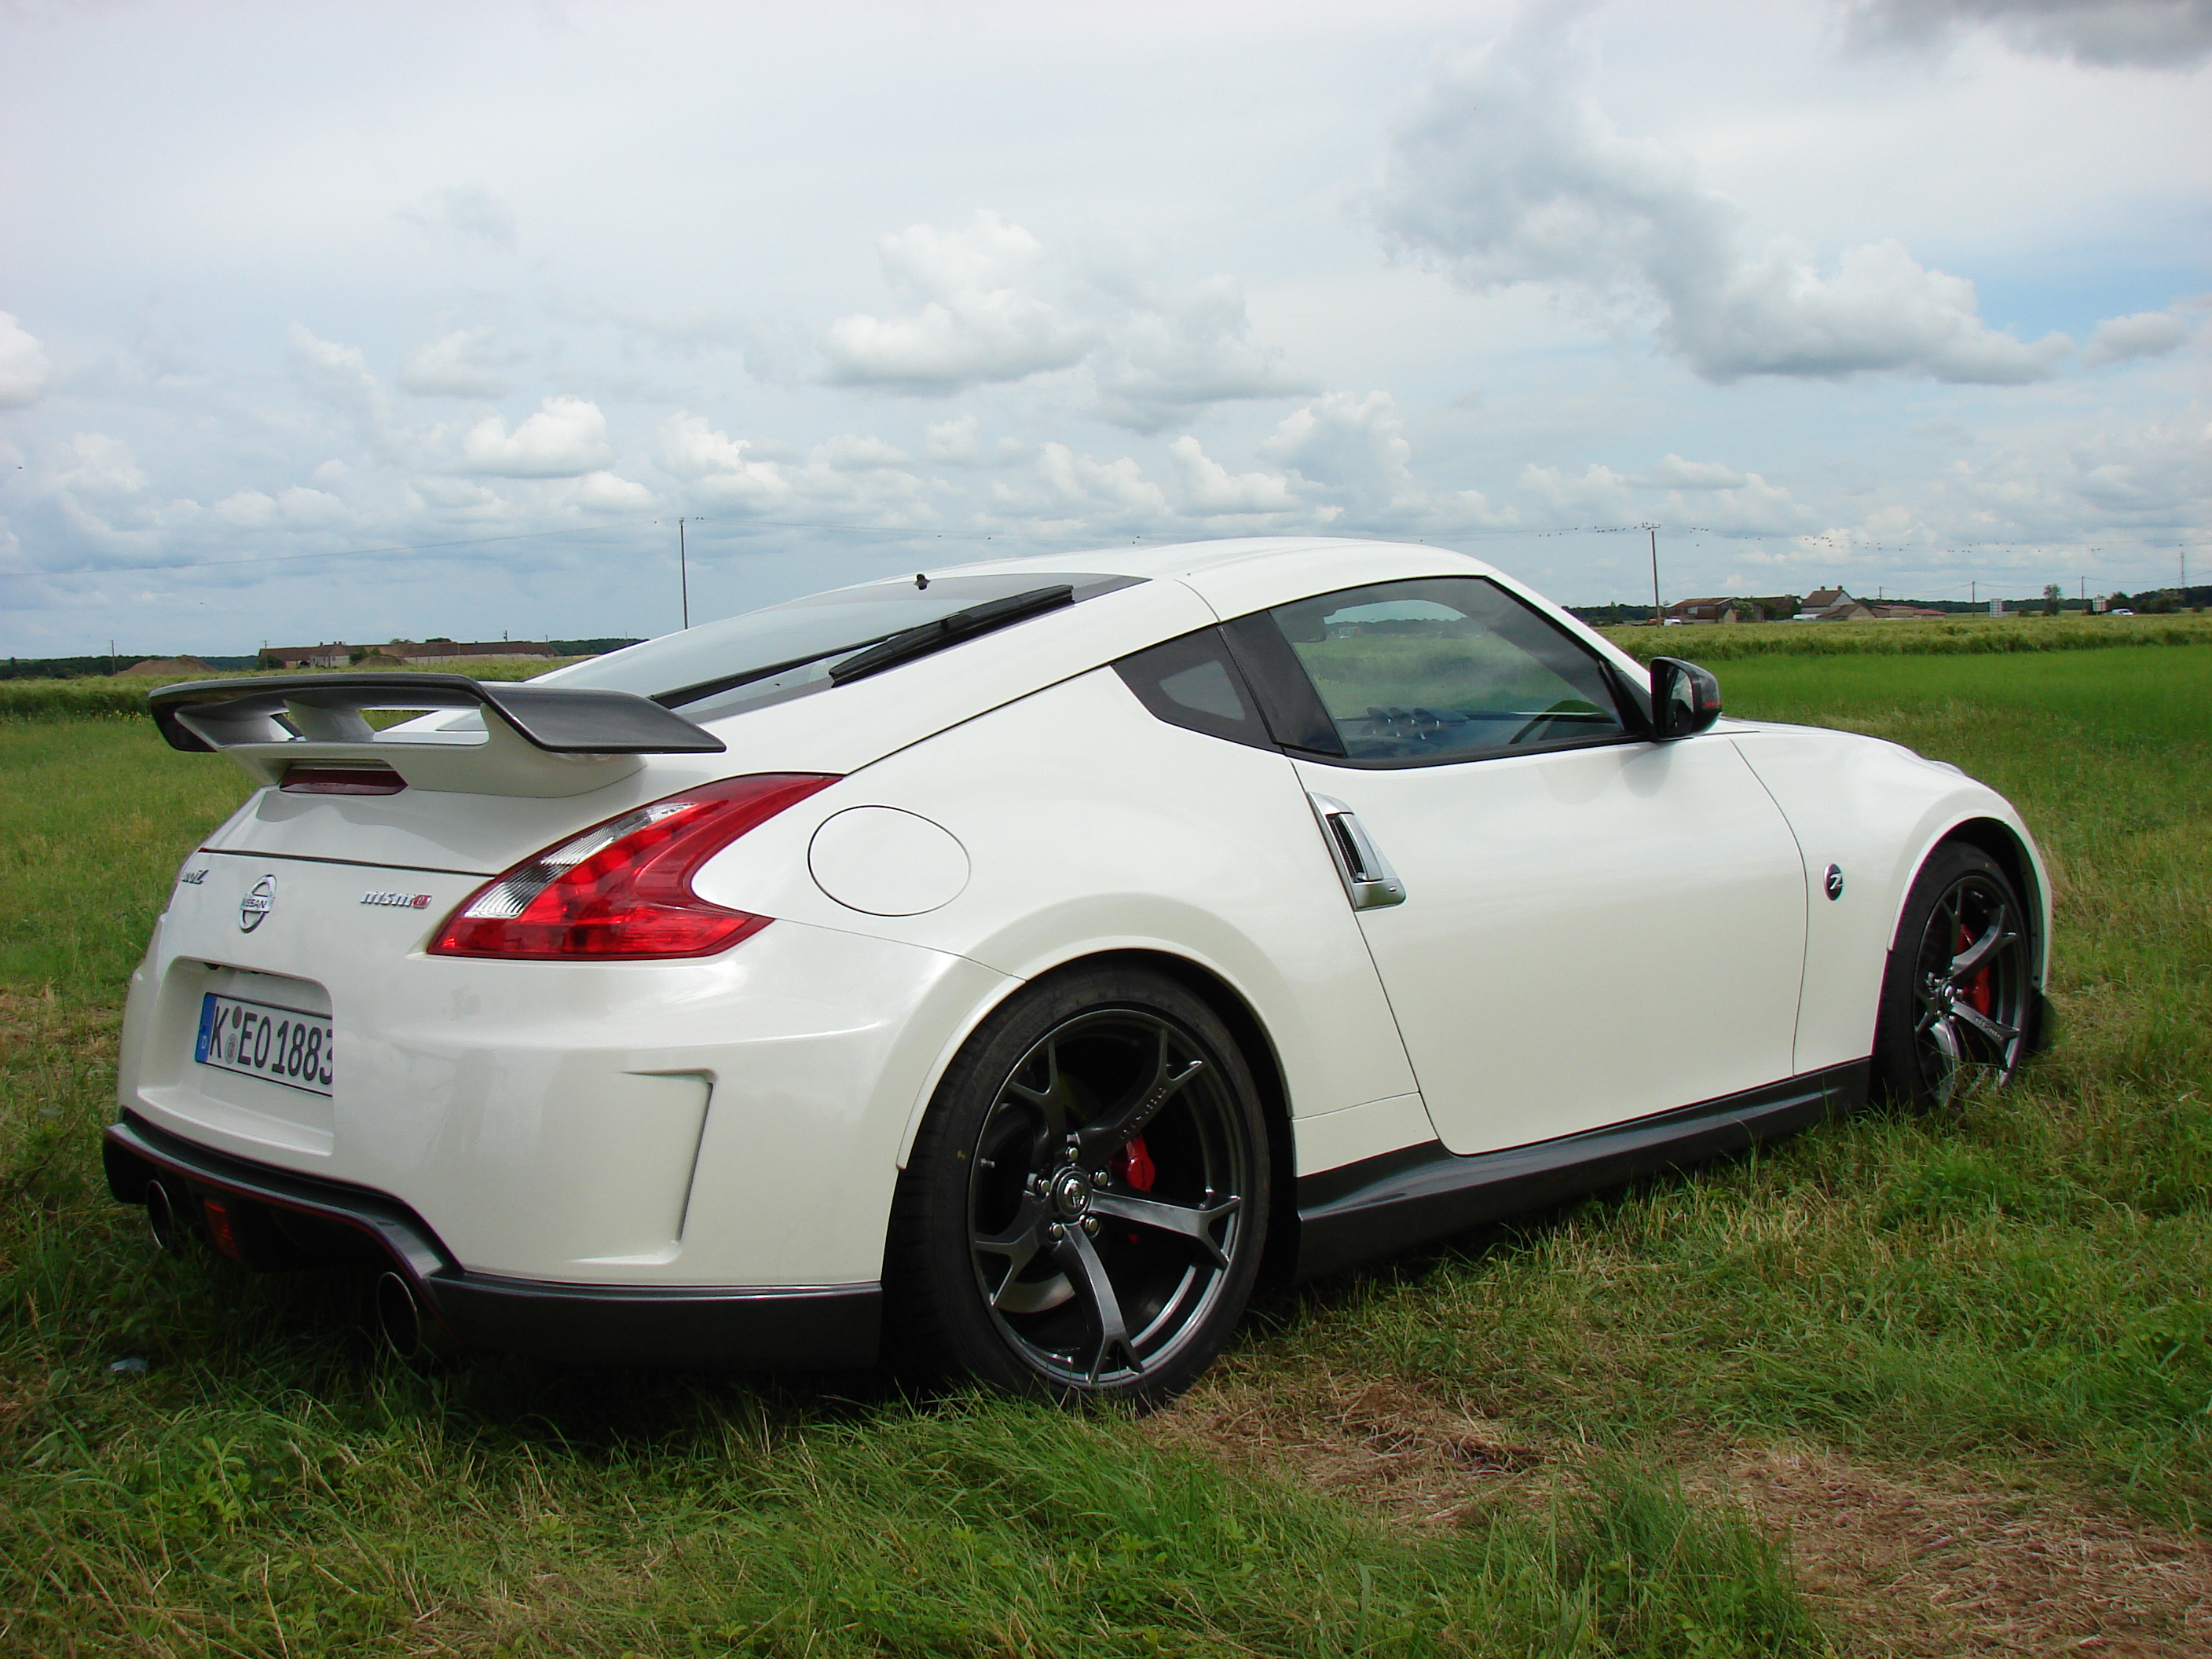 essai vid o de la nissan 370z nismo par caradisiac dark cars wallpapers. Black Bedroom Furniture Sets. Home Design Ideas